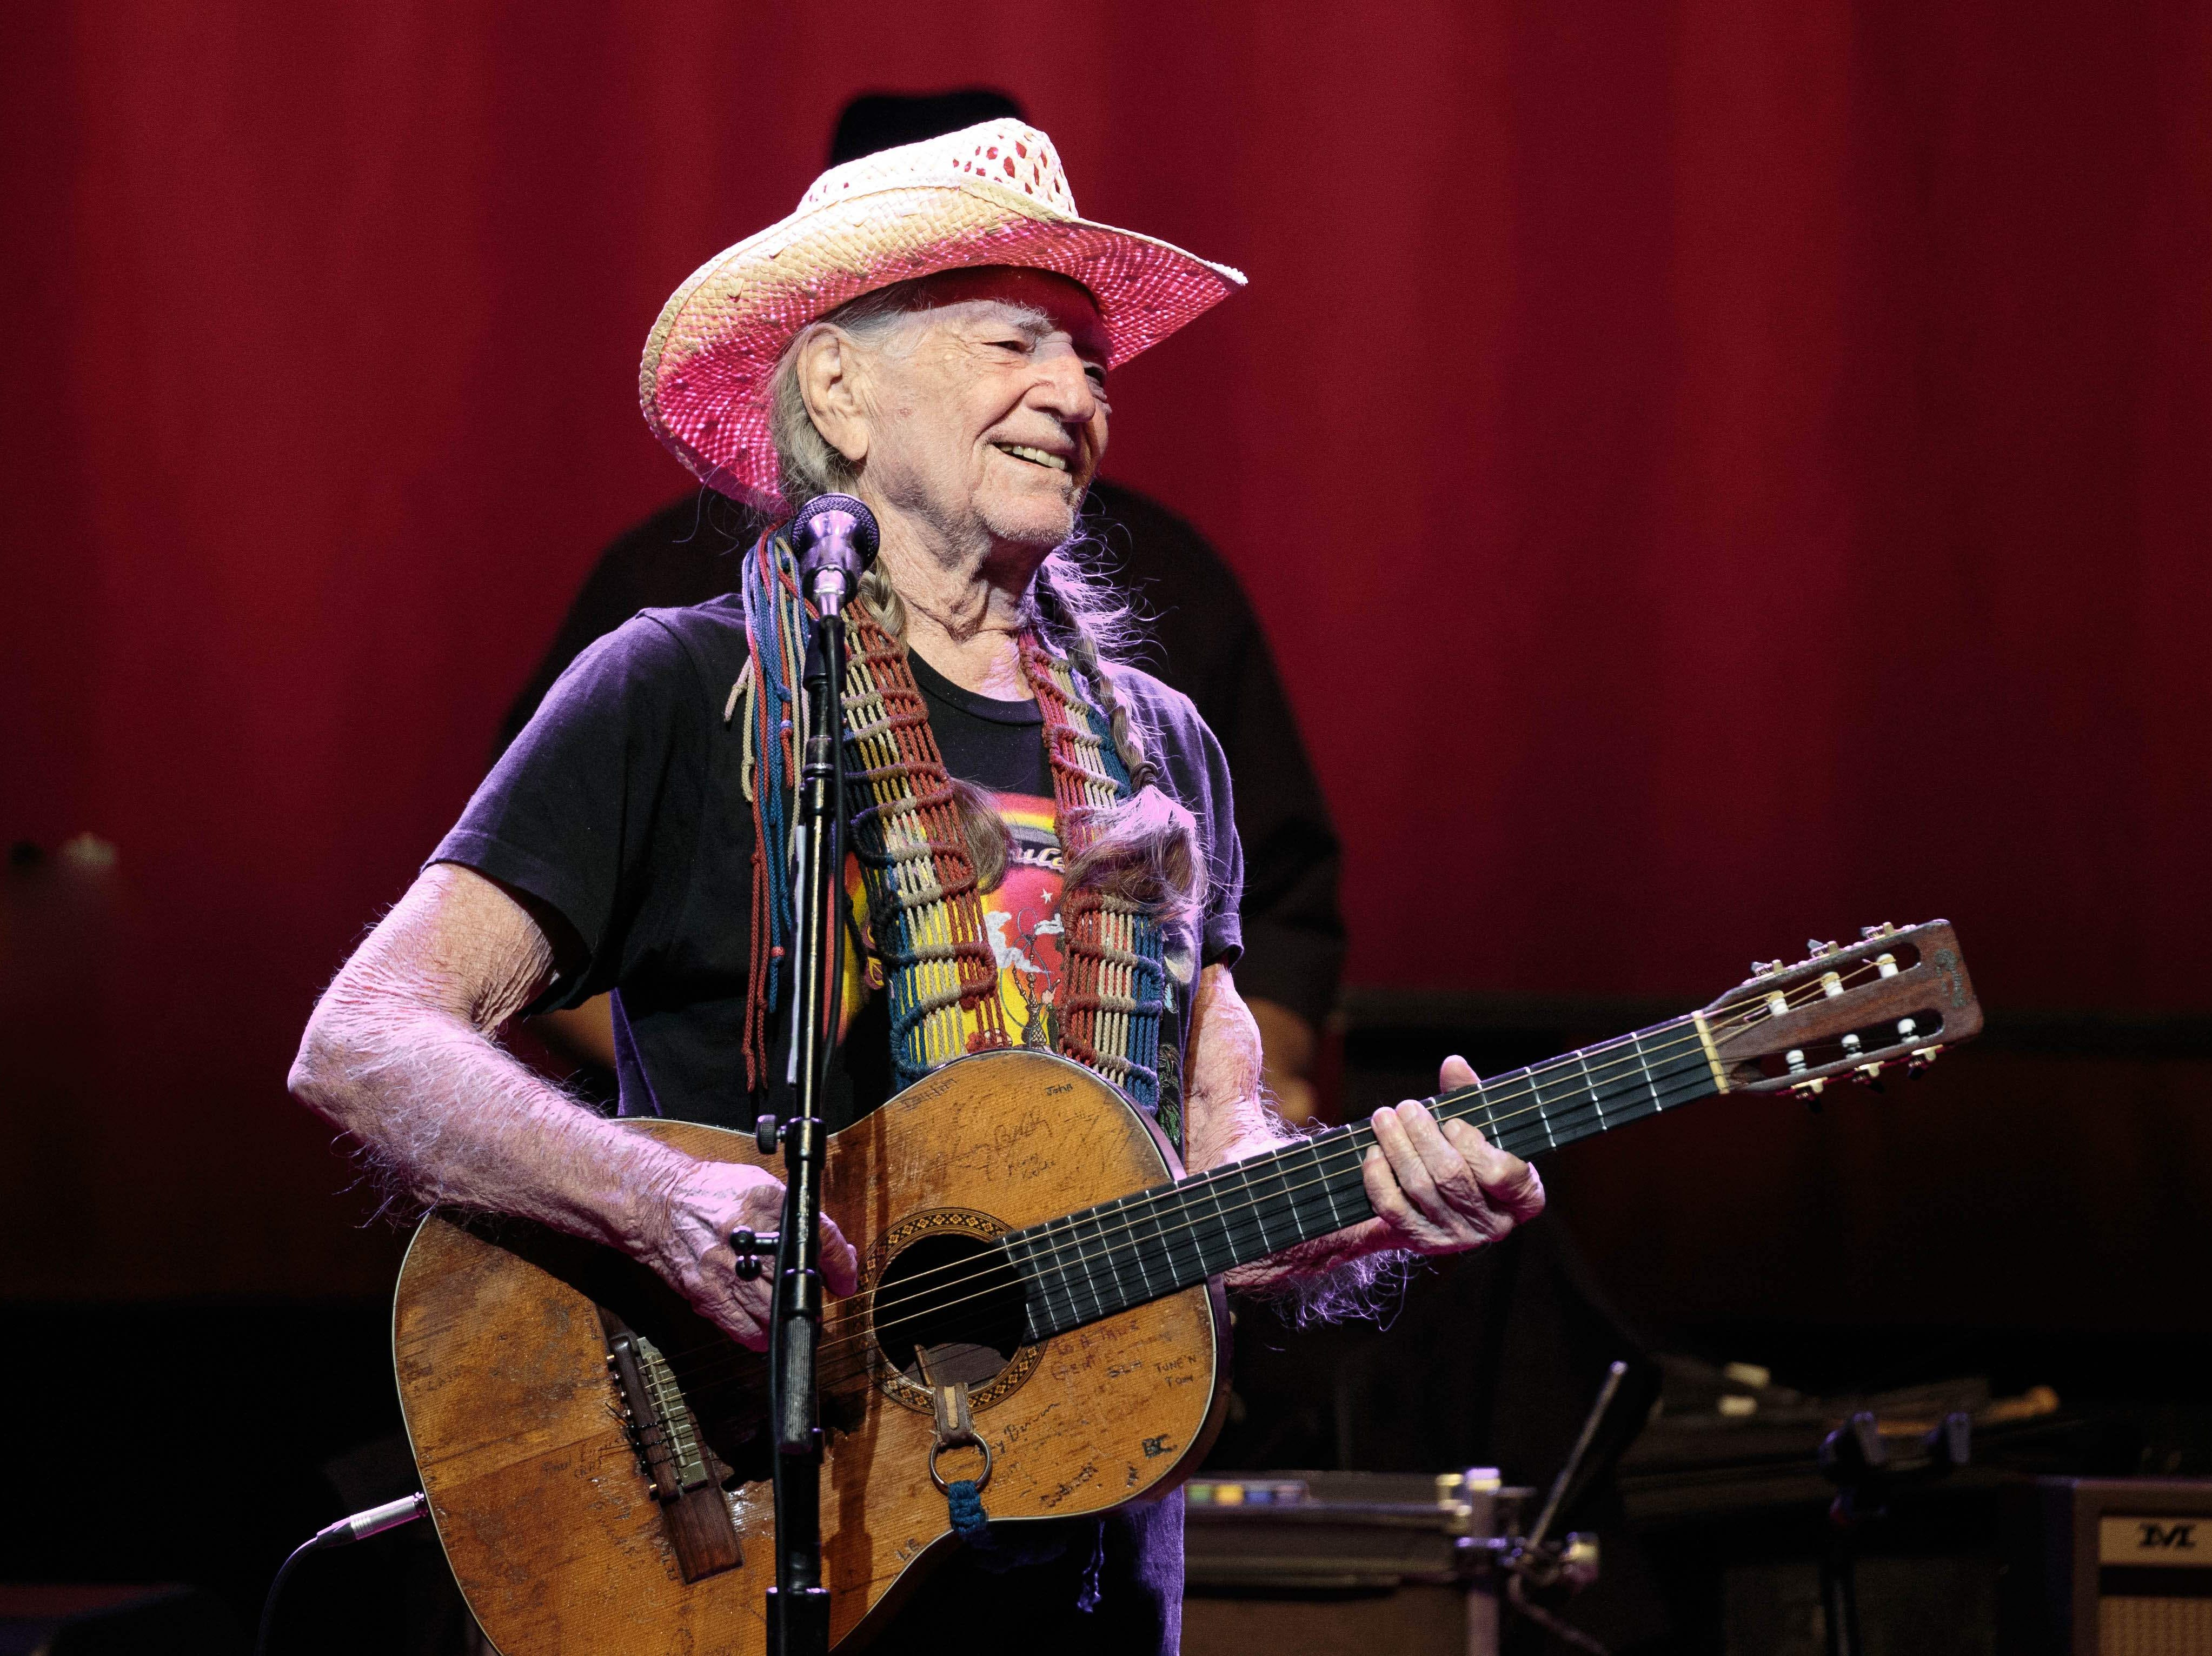 """US musician Willie Nelson performs during the """"Willie Nelson & Family New Year"""" concert at Austin City Limits Live on December 30, 2018 in Austin, Texas. (Photo by SUZANNE CORDEIRO / AFP)SUZANNE CORDEIRO/AFP/Getty Images ORIG FILE ID: AFP_1BW5KH"""